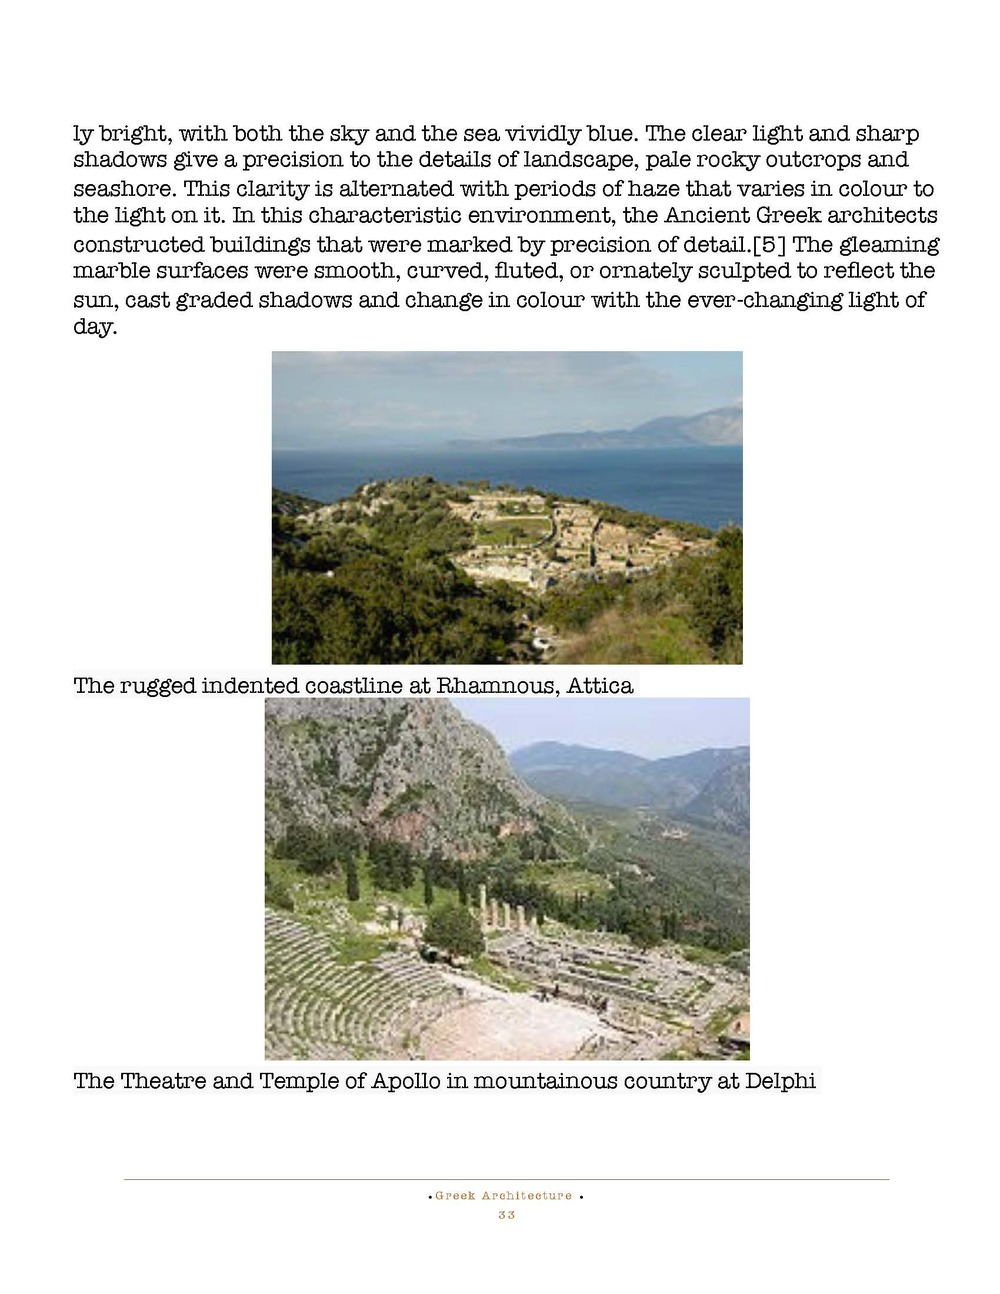 HOCE- Ancient Greece Notes_Page_033.jpg